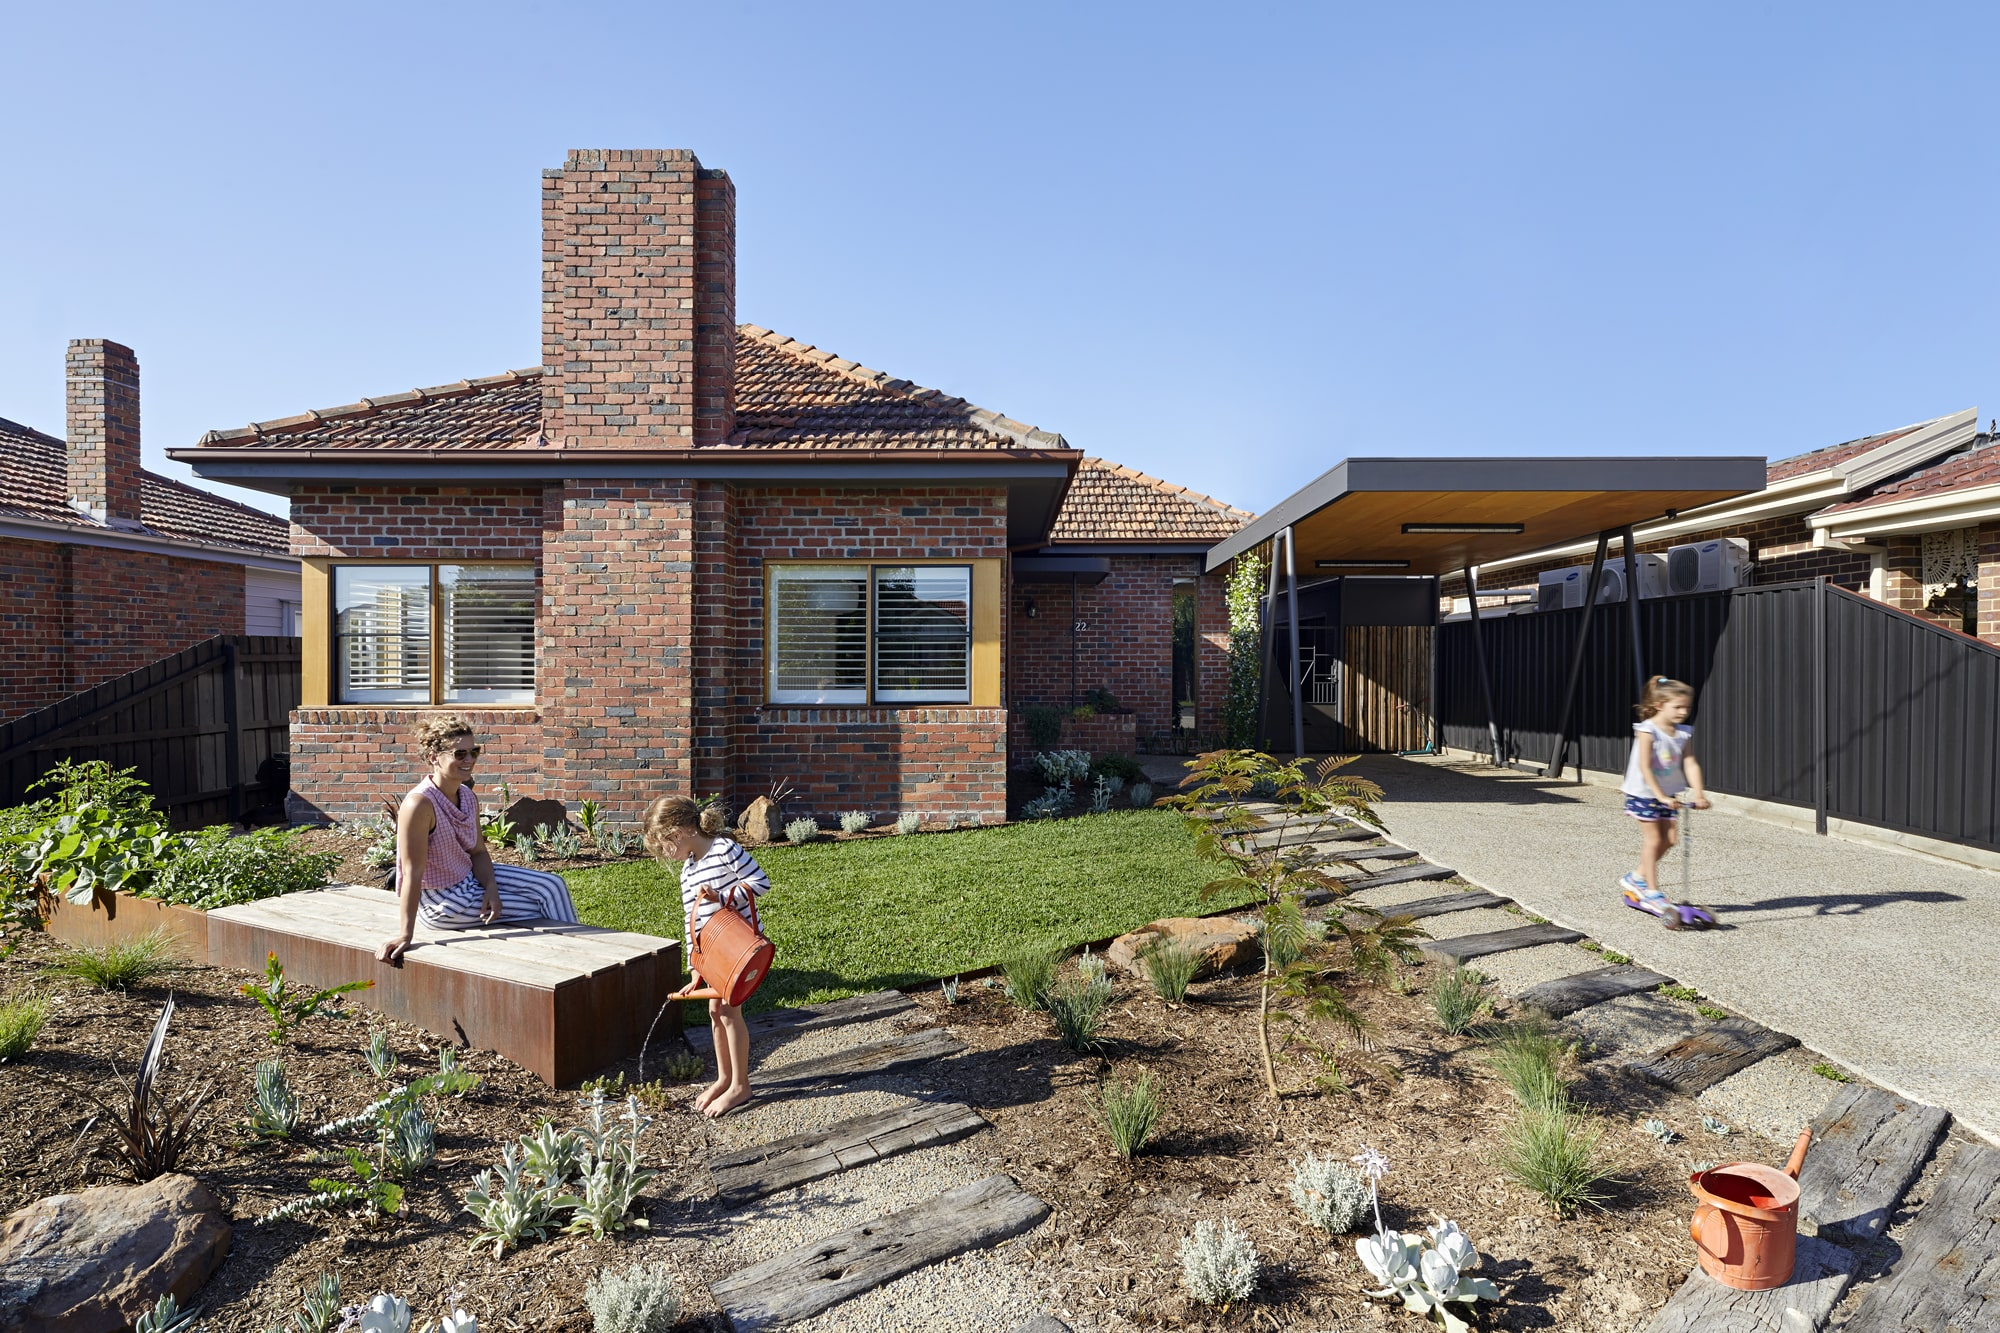 Brick Paving Also Crosses The Threshold Between Inside And Out, Further Blurring The Boundaries.